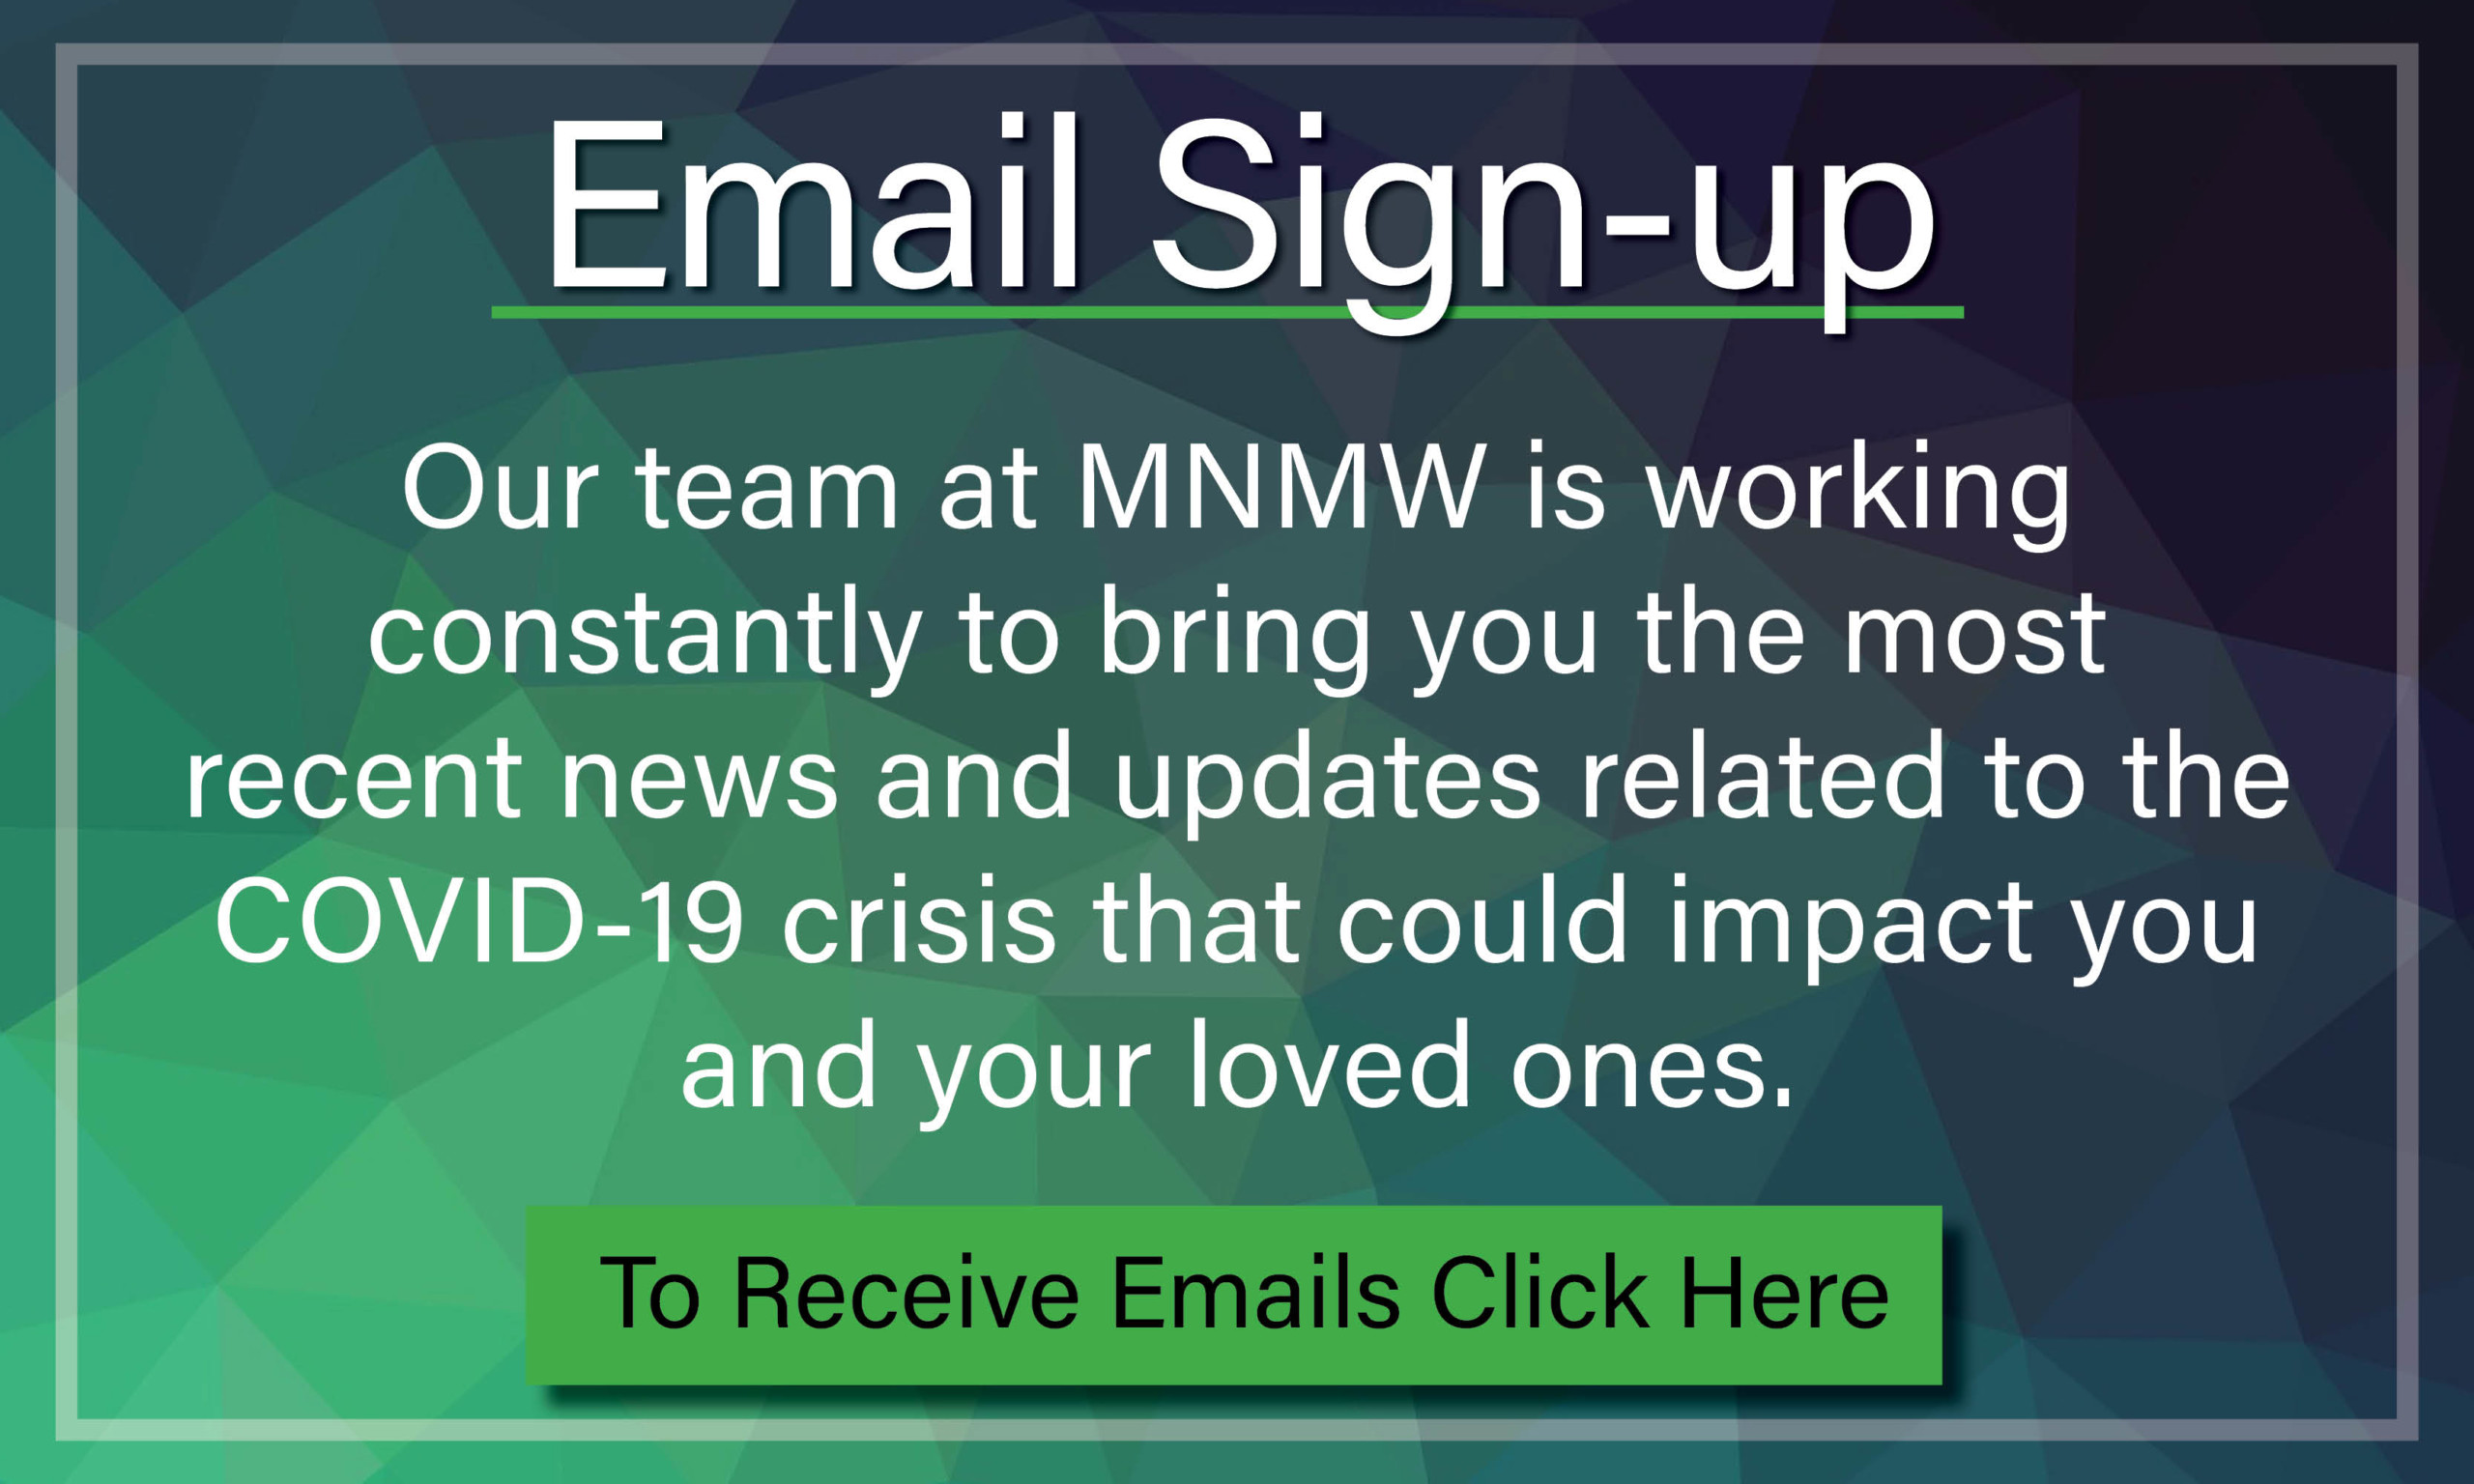 MNMW Email Sign-up